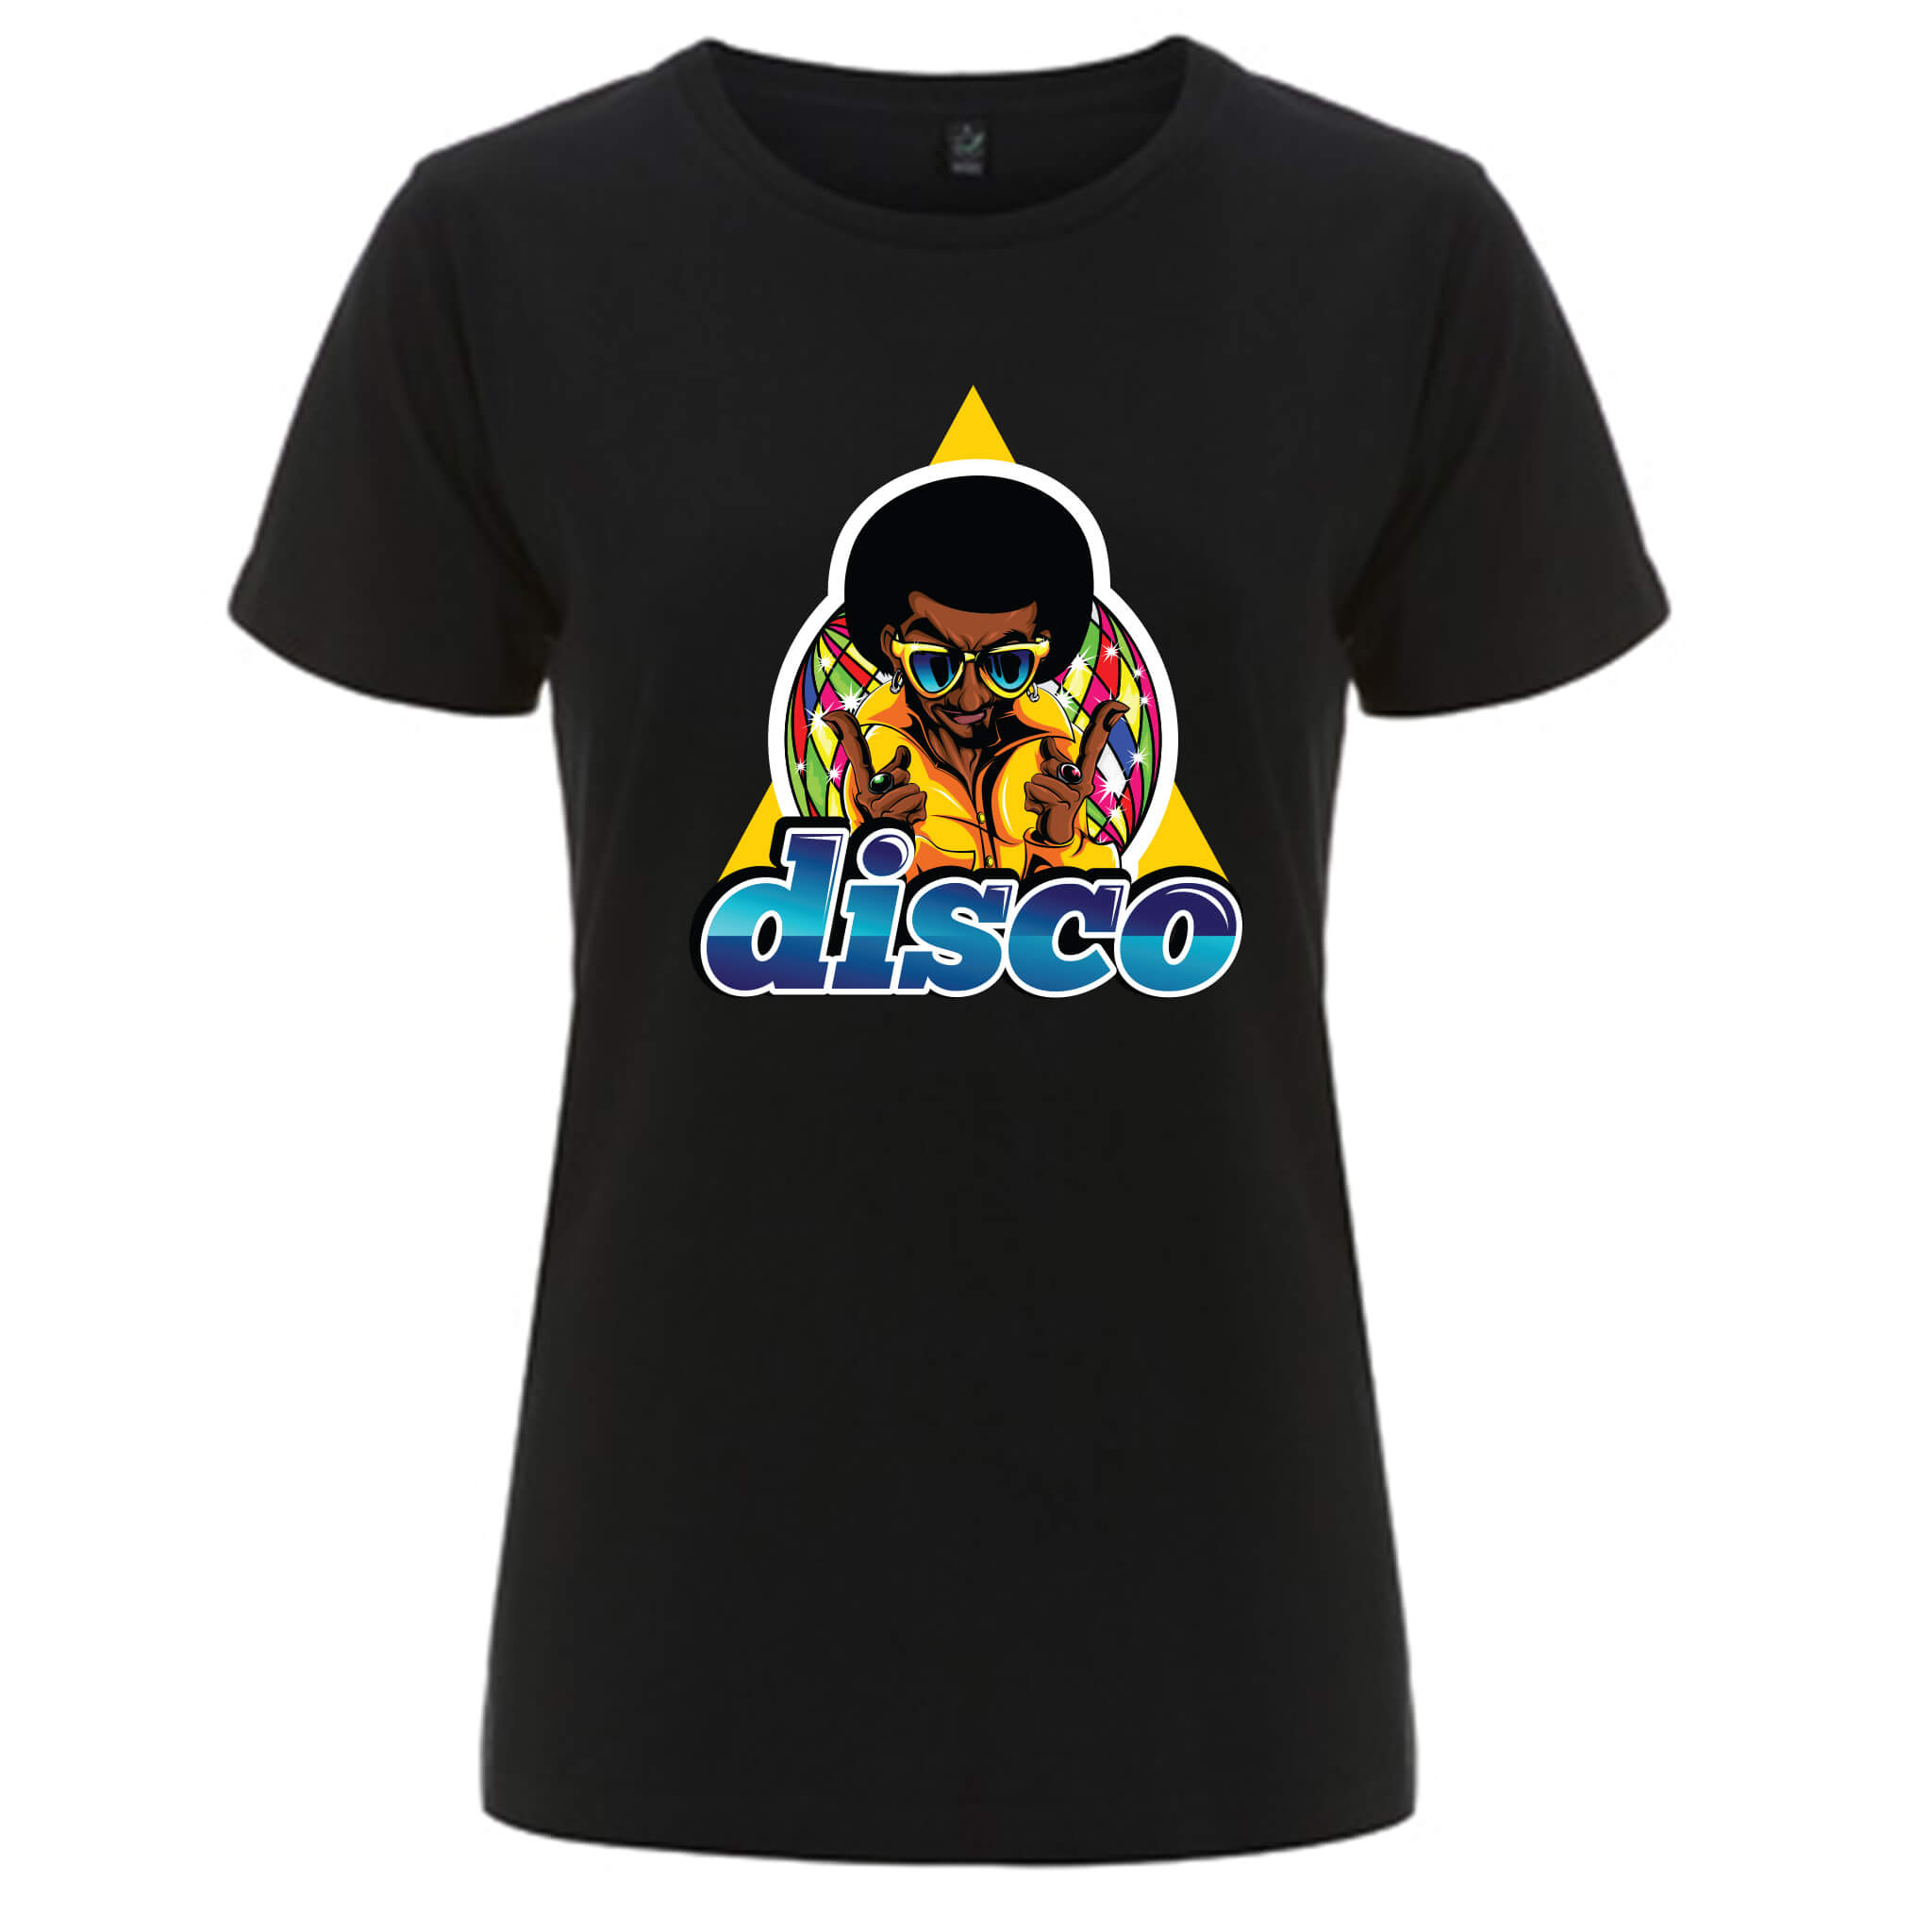 Musica Disco - T-shirt Donna - T-Shirt by Fol The Brand